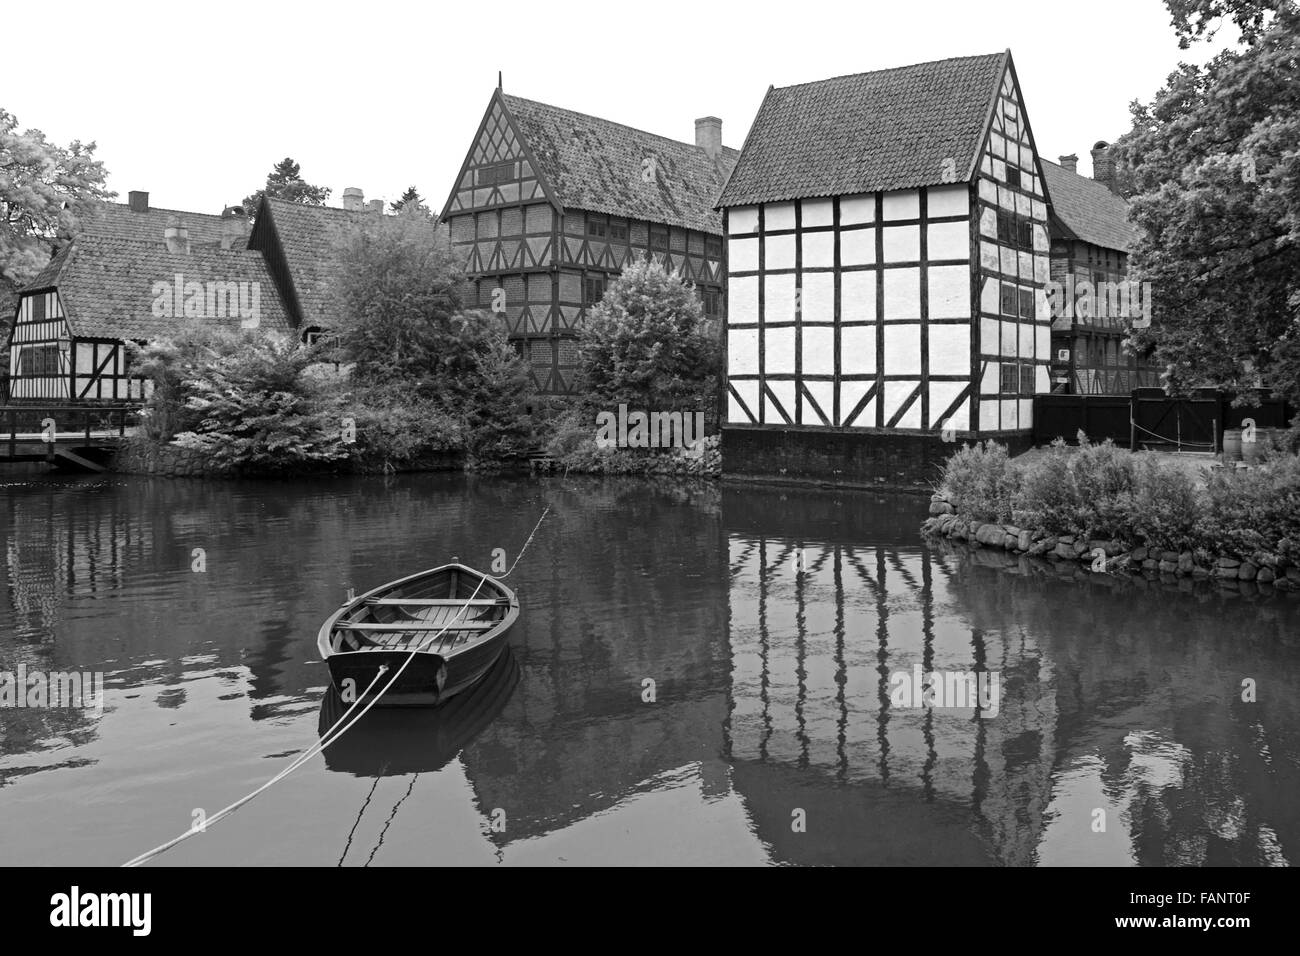 Den Gamle By - The Old Town in Aarhus, Denmark, is an open-air town museum. - Stock Image